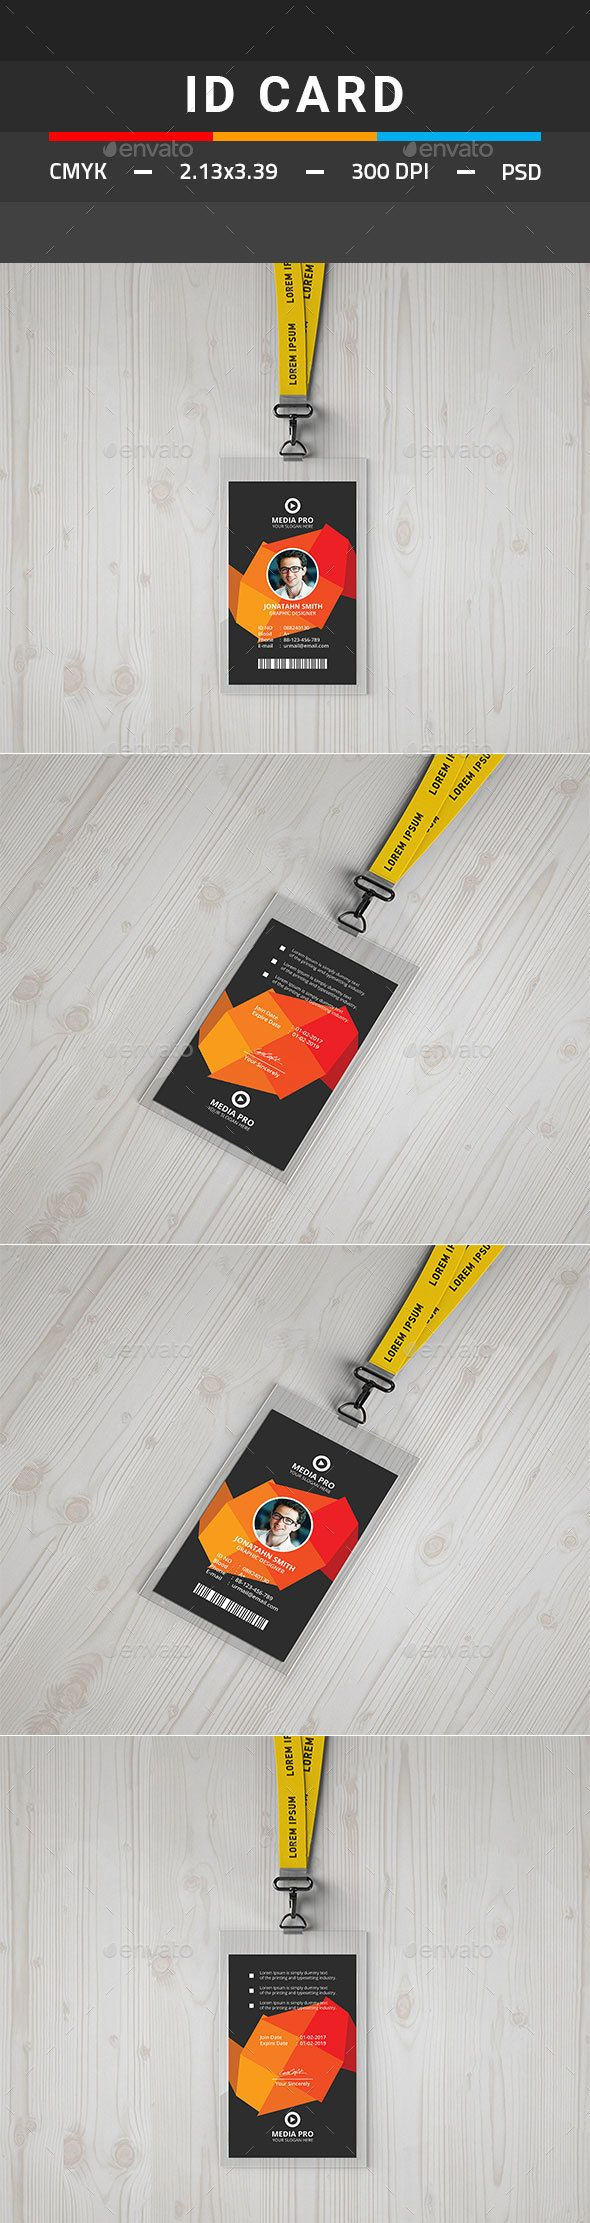 79 best ID Card Design Templates images on Pinterest | Print ...